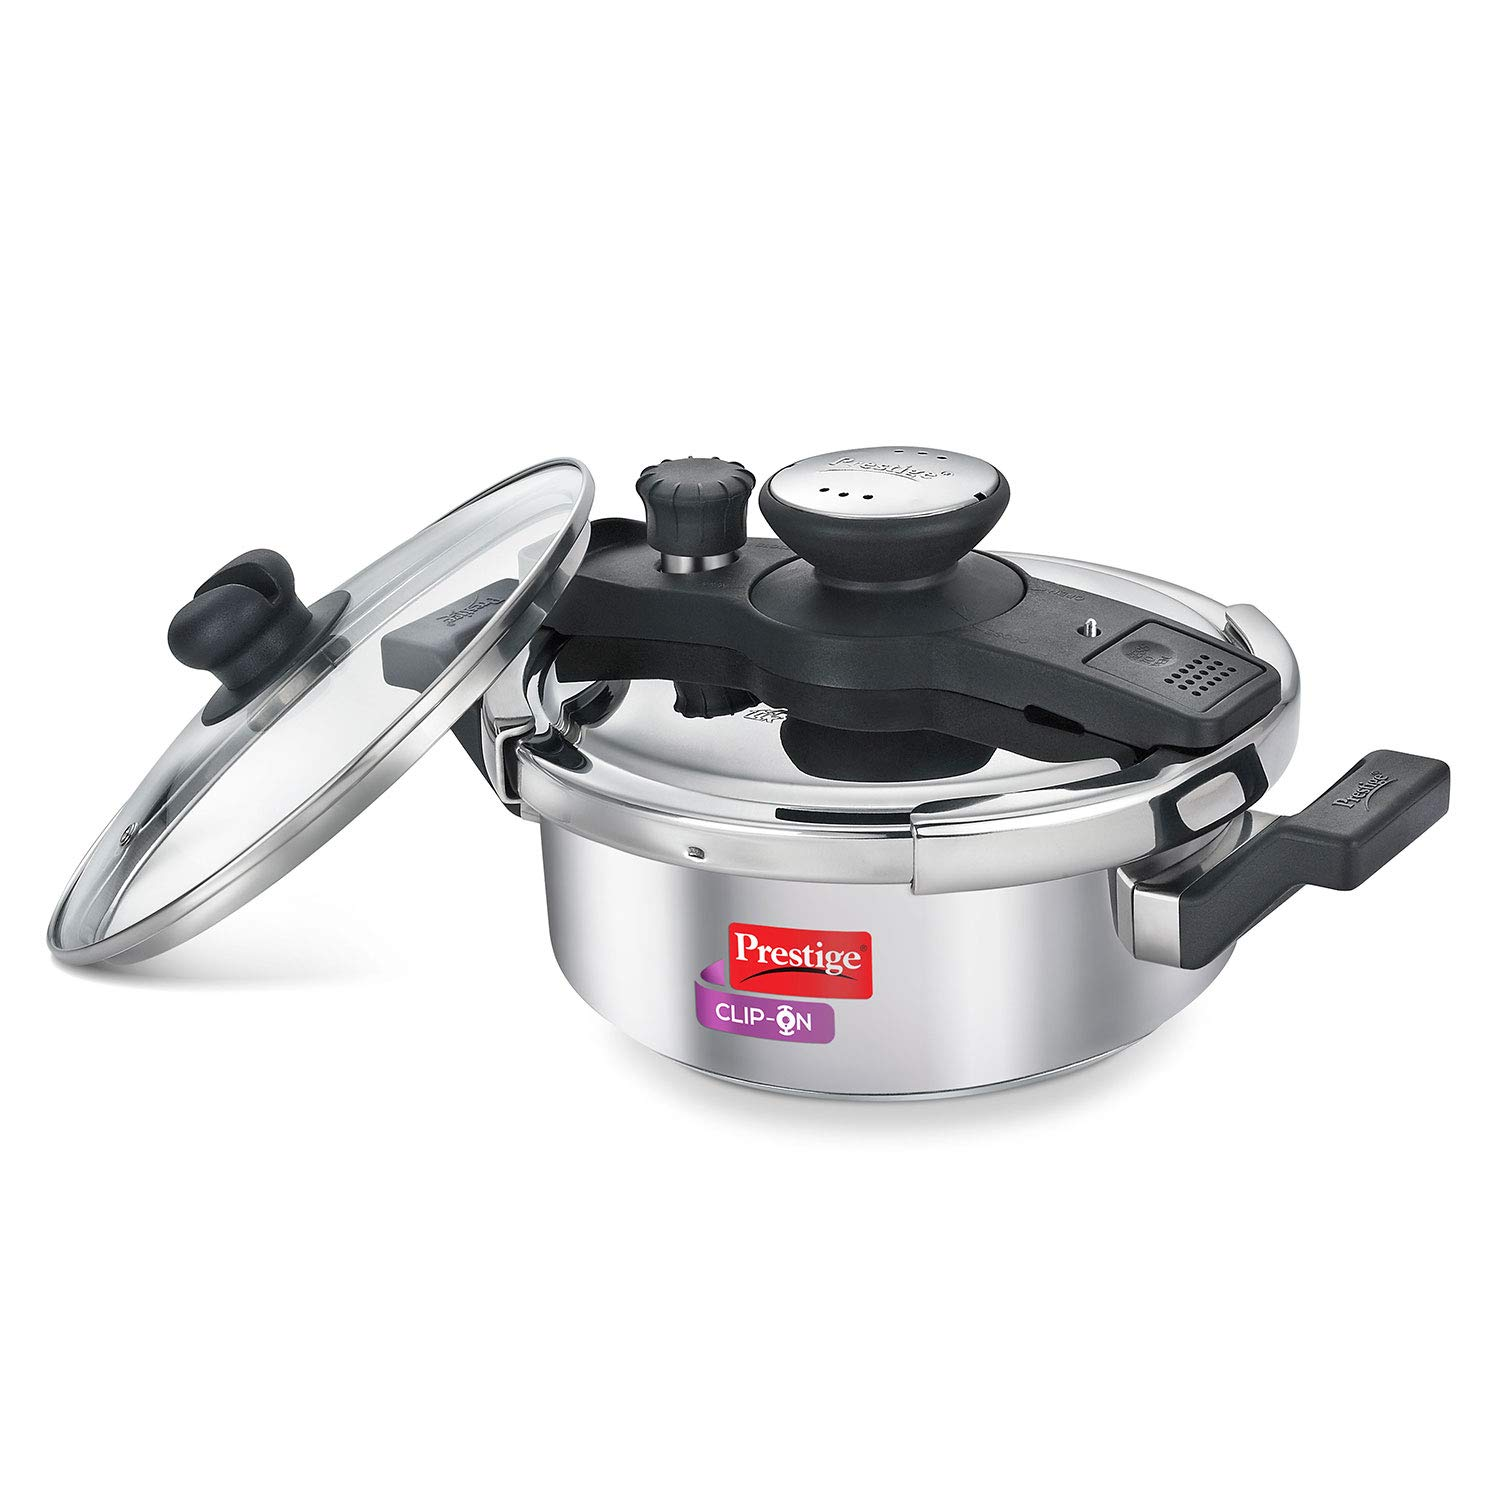 Prestige Clip-on Stainless Steel Pressure Cooker, Cook And Serve Pot with Extra Glass Lid, 3 Liters